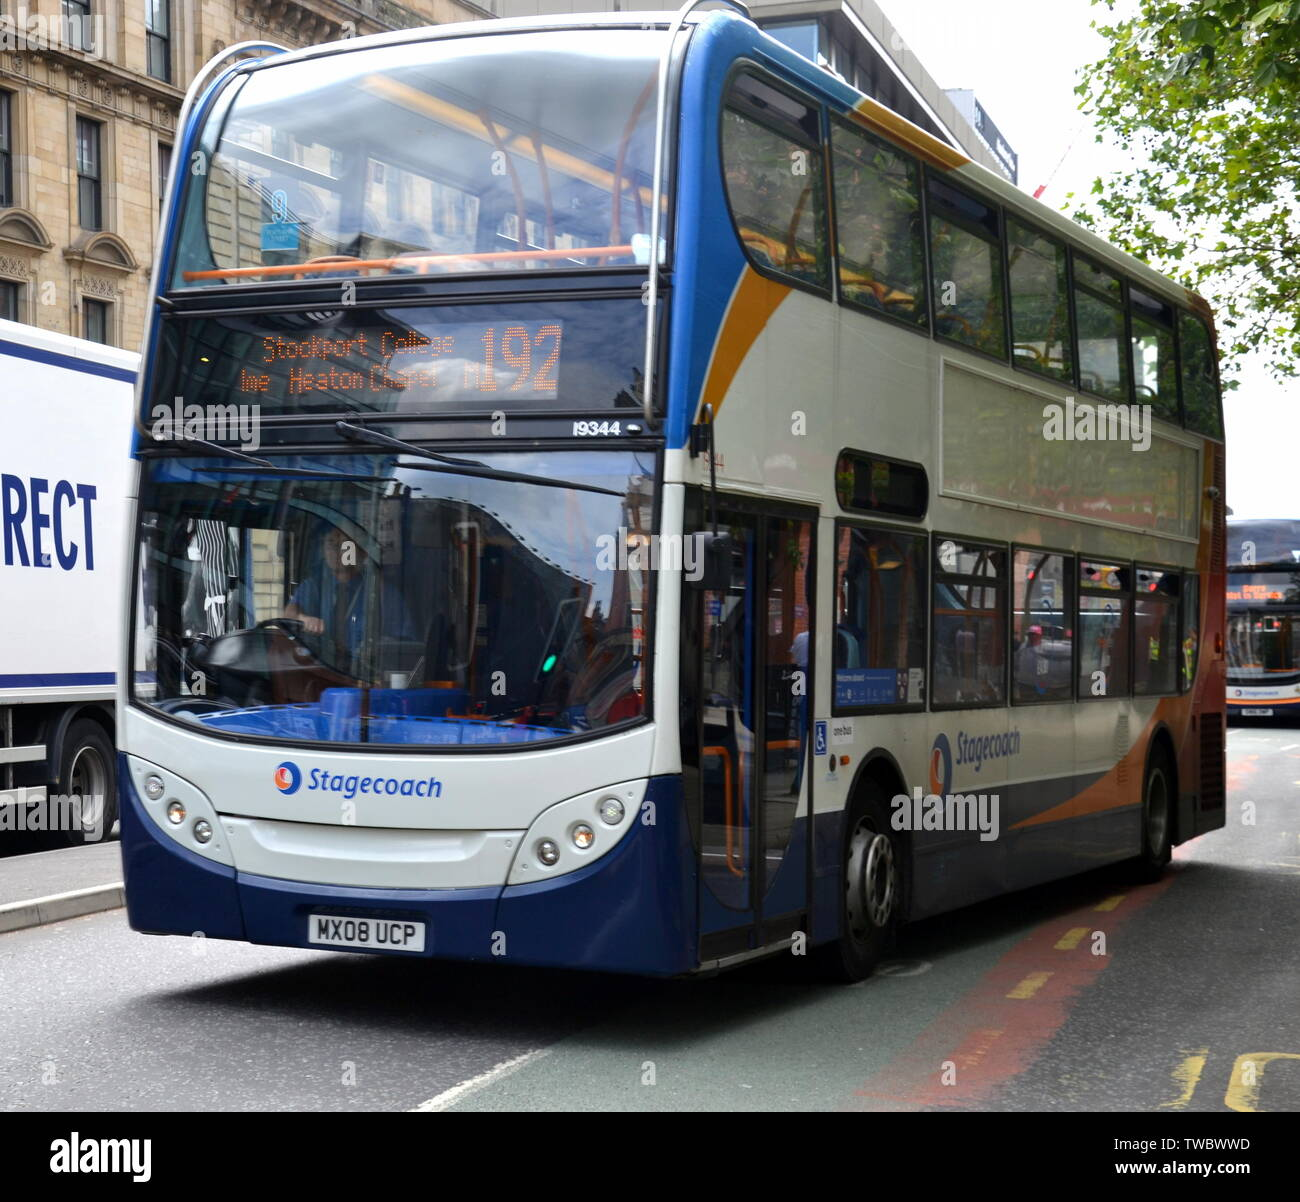 A Stagecoach bus, number 192, in city centre Manchester, uk - Stock Image